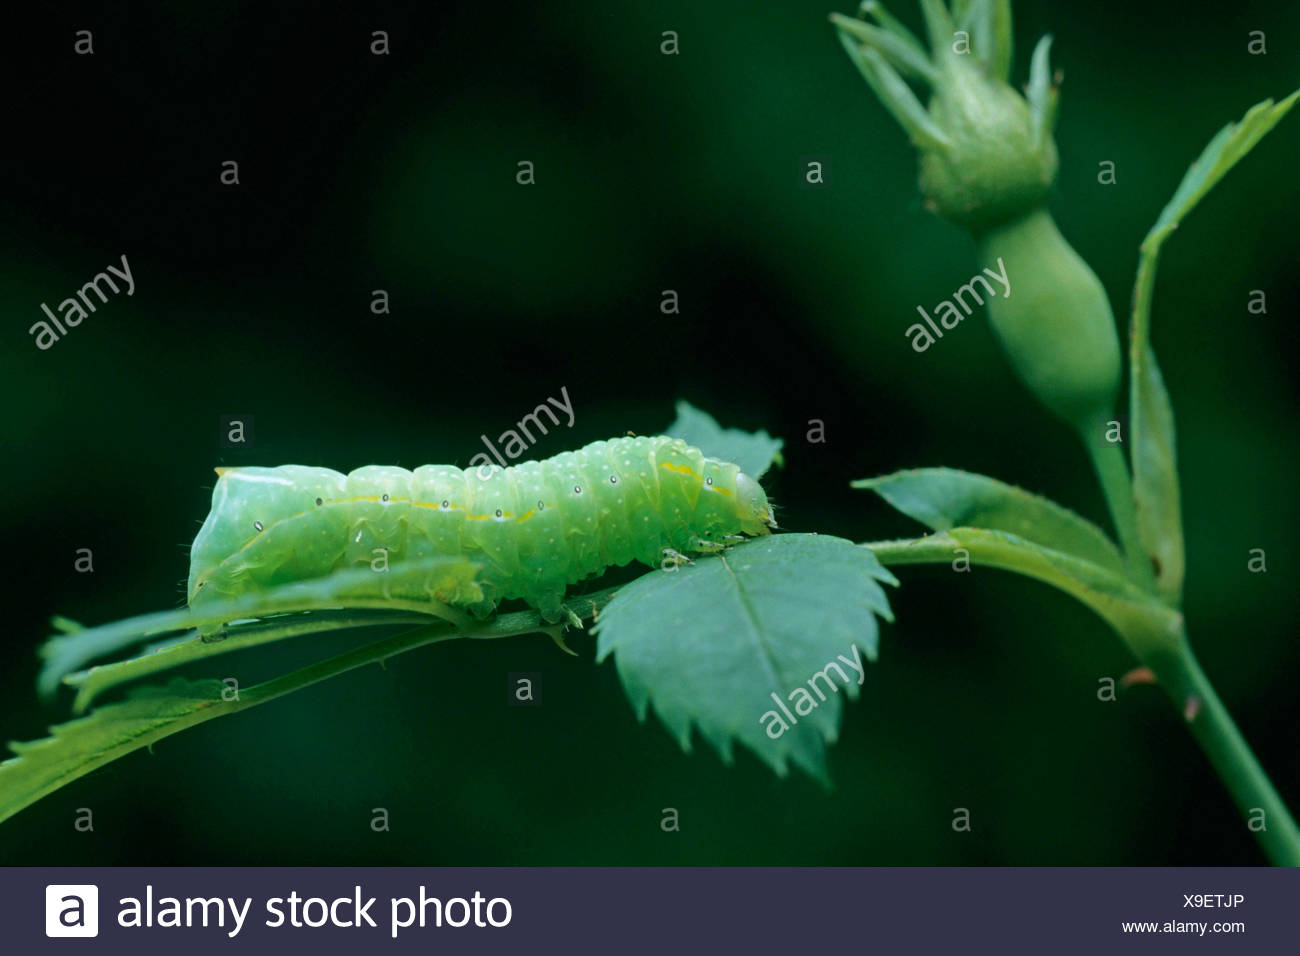 Copper Underwing, Humped Green Fruitworm, Pyramidal Green Fruitworm (Amphipyra pyramidea), on a stem - Stock Image